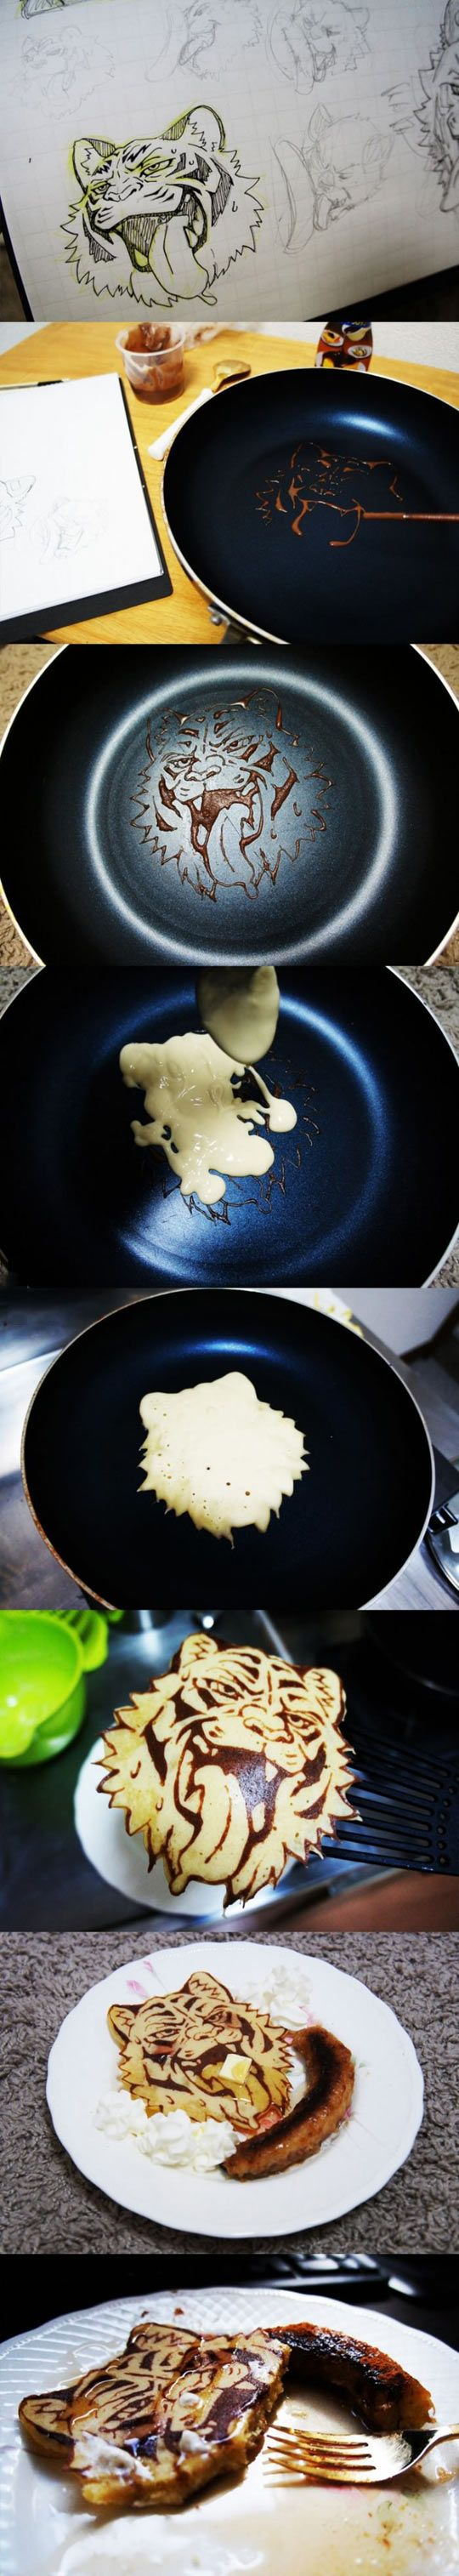 Cool breakfast ideas: Drawing Tiger Hotcake